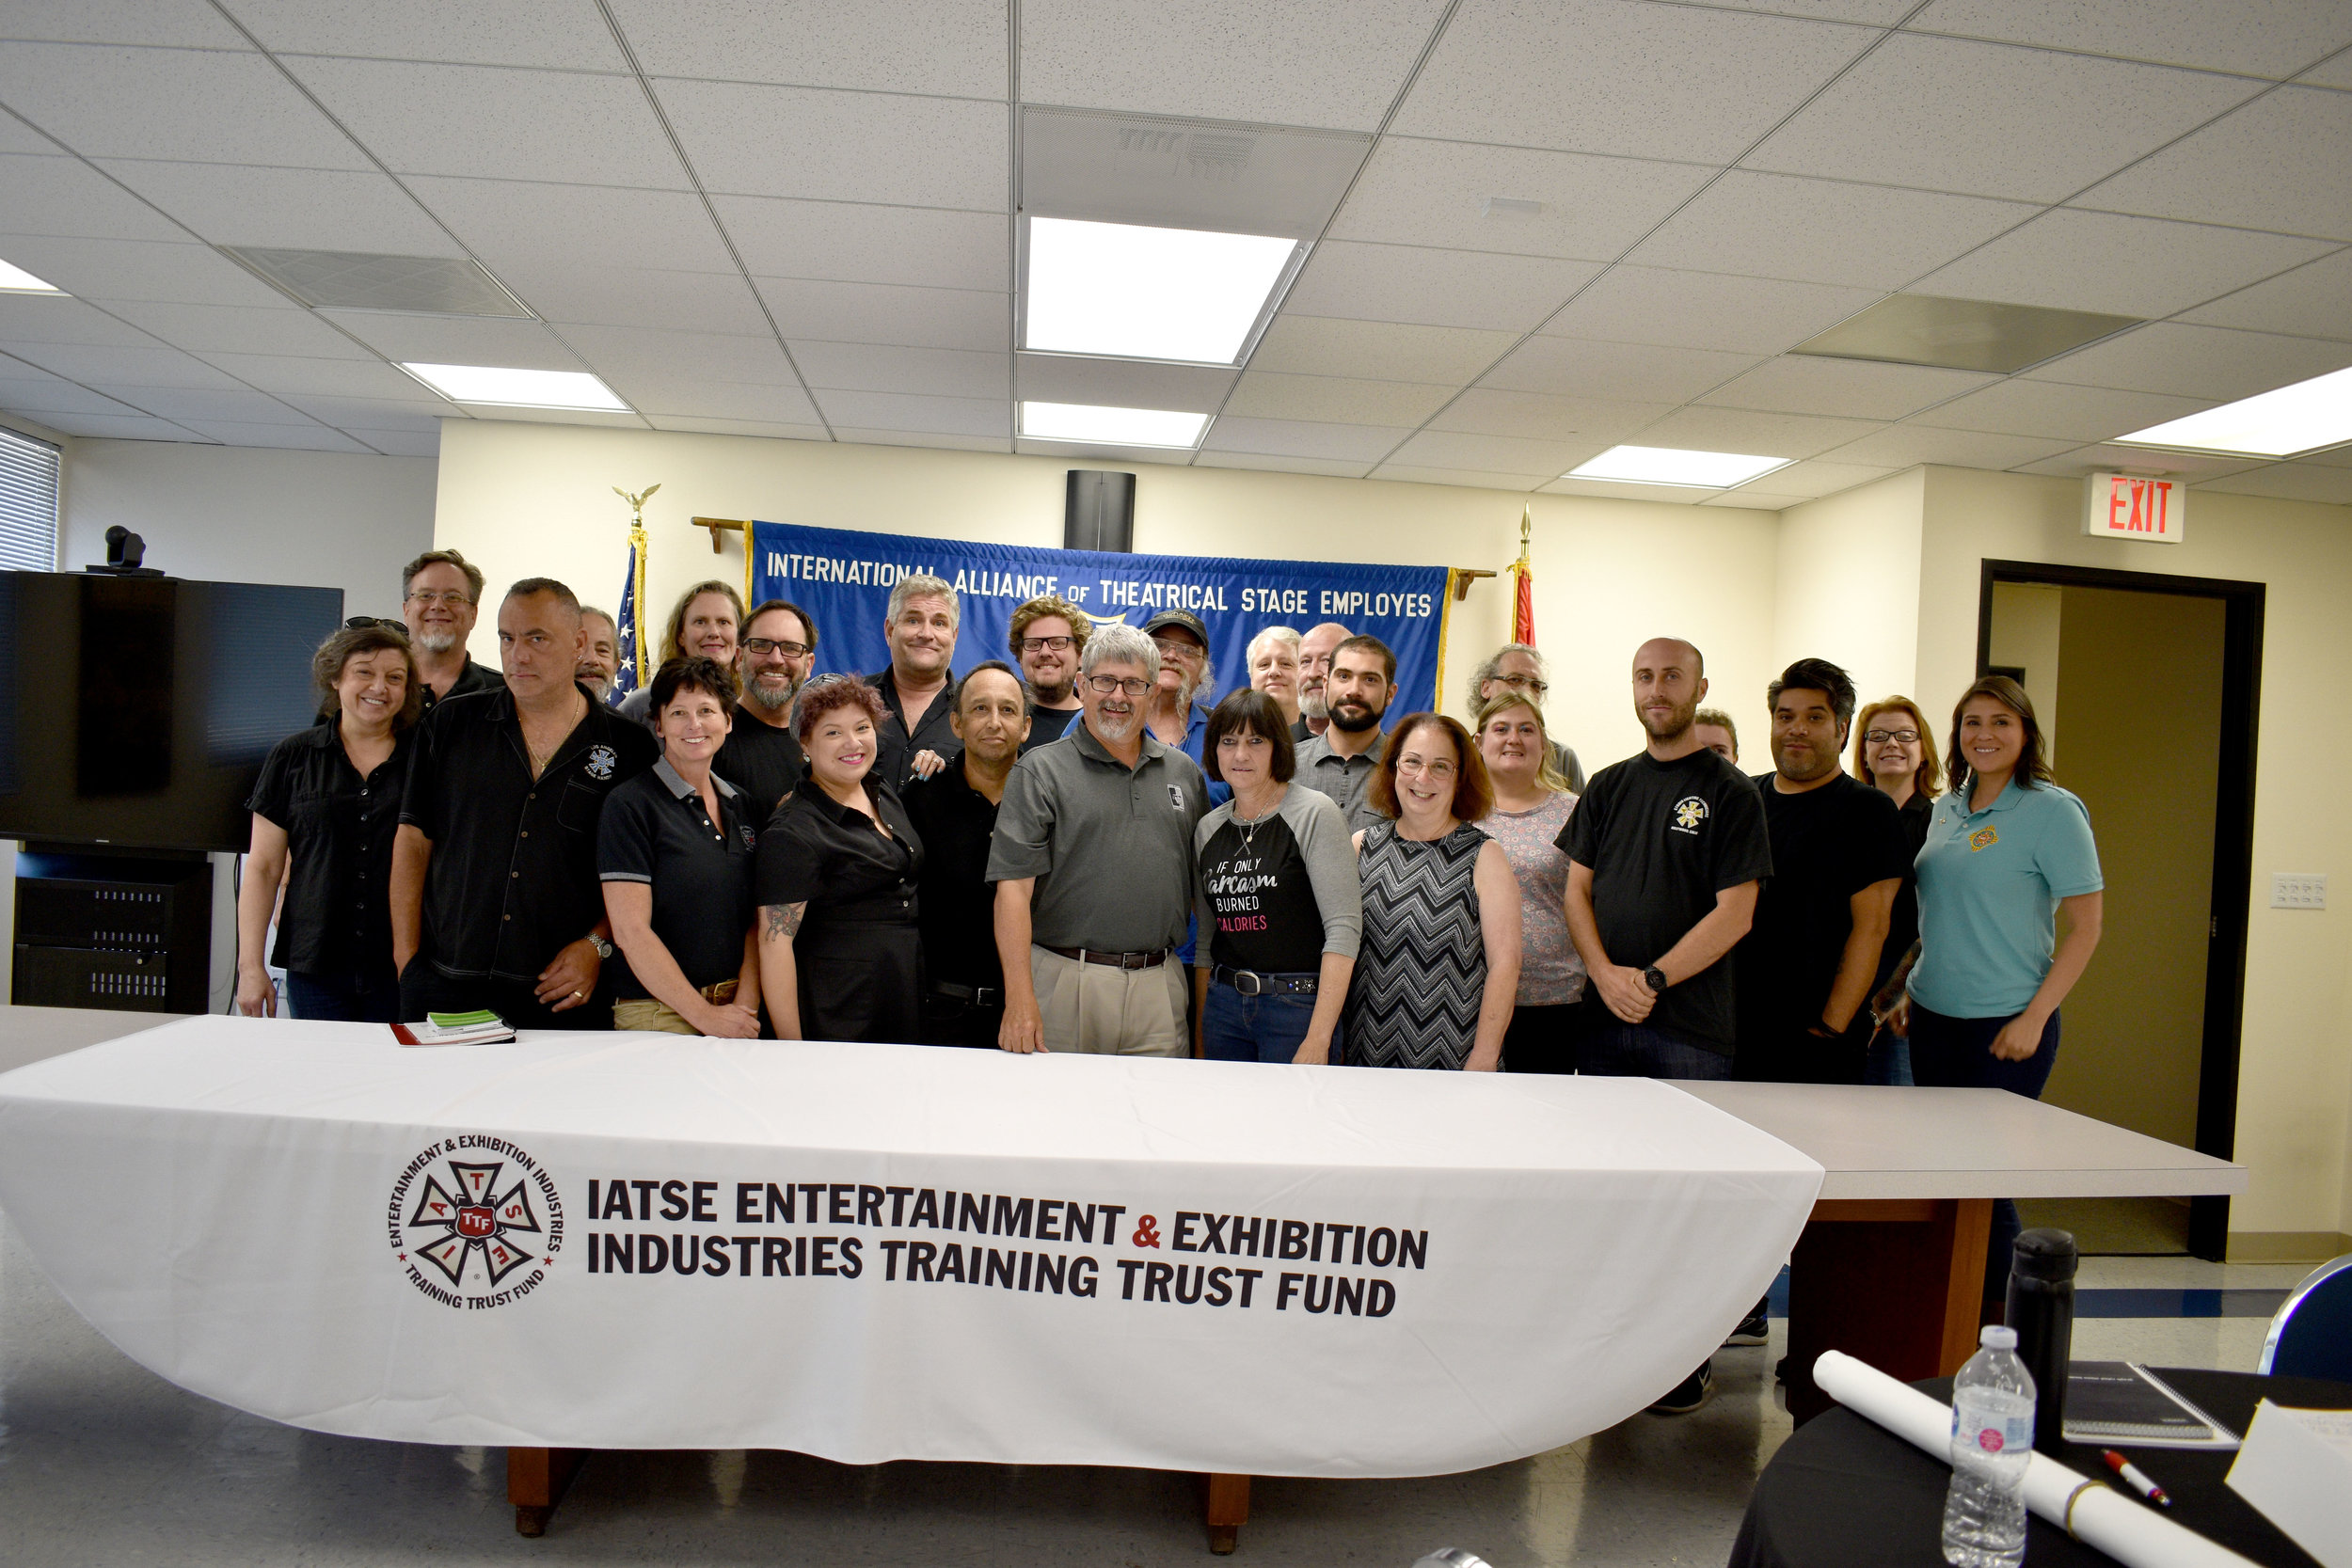 IATSE TTF Train the Trainer: Teaching and Presentation Techniques in Los Angeles, CA | June 9-10, 2018